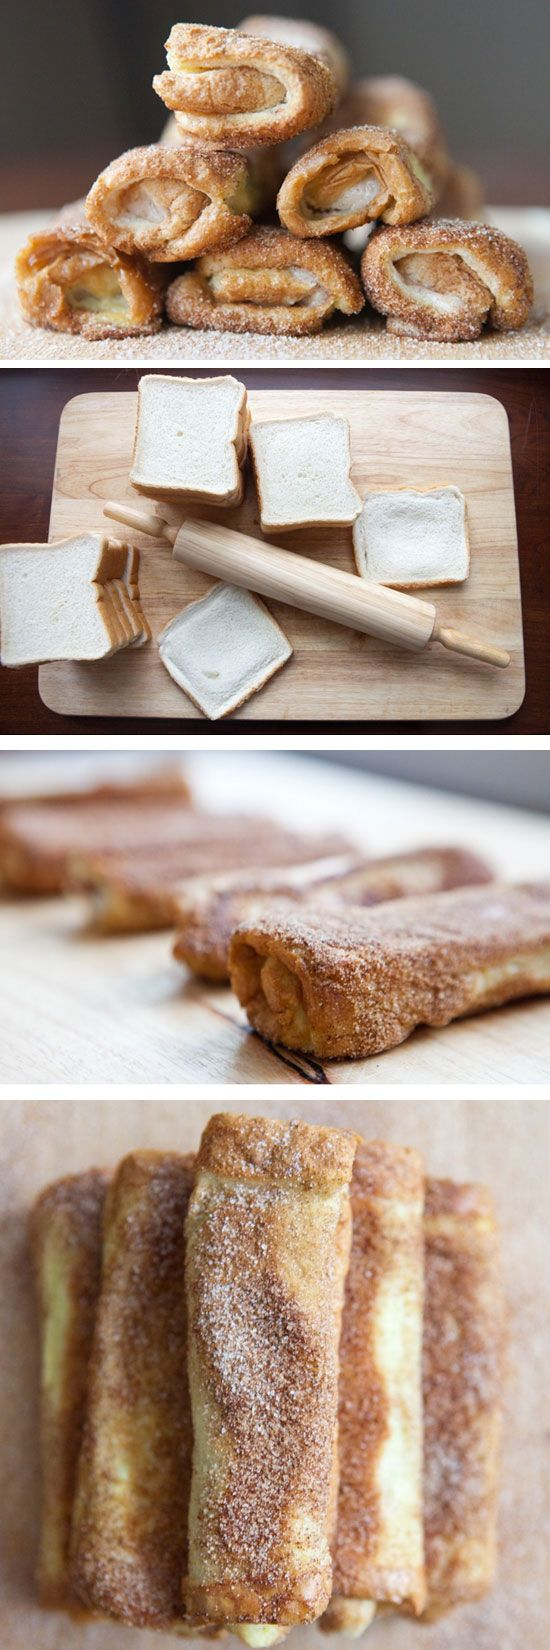 French Toast Roll-Ups   Click Pic for 25 Easy Mothers Day Breakfast in Bed Ideas   Homemade Brunch Ideas for a Crowd